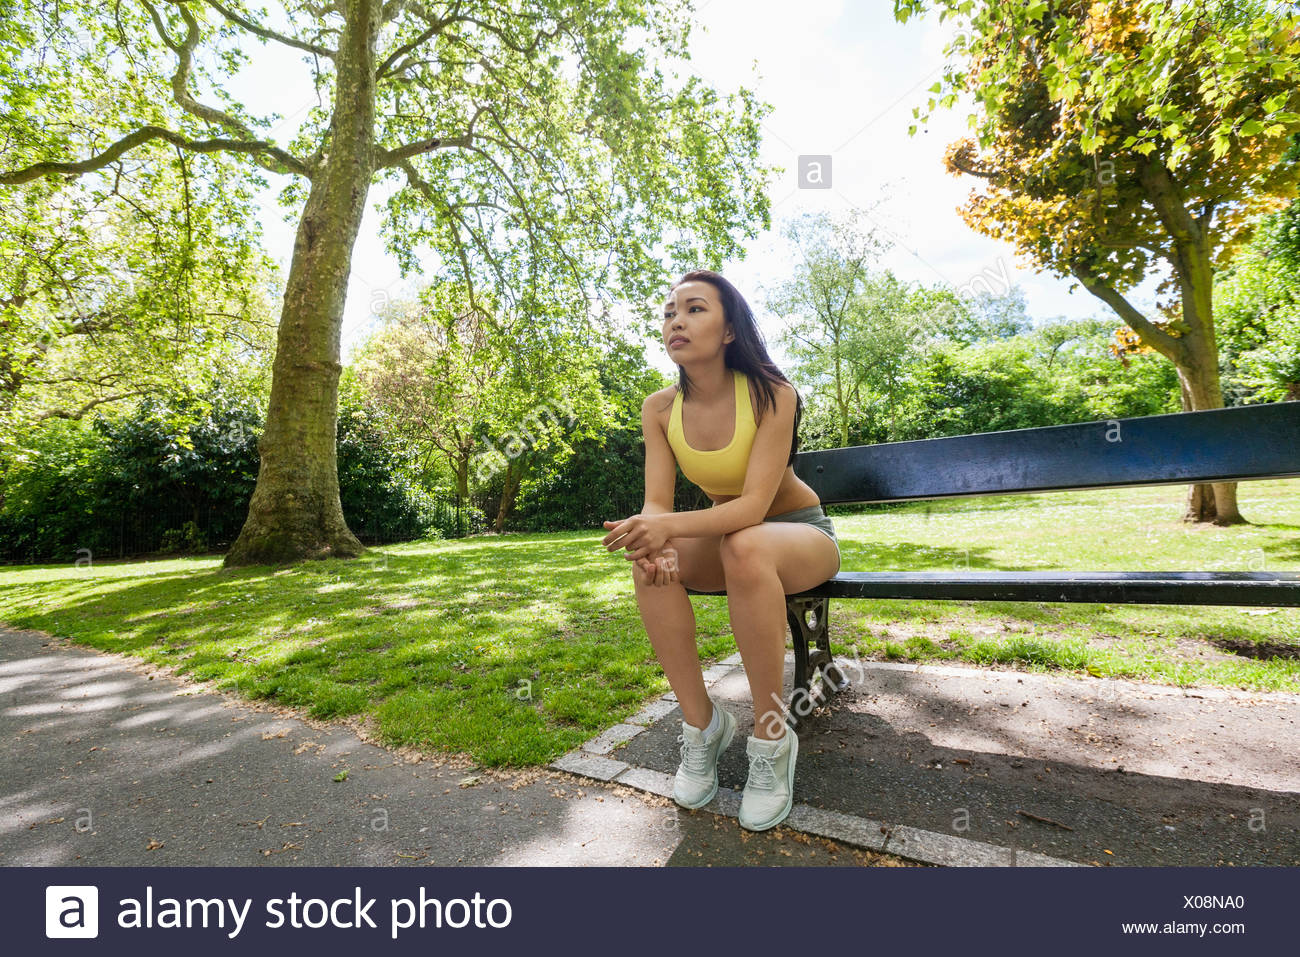 Full length of tired fit woman sitting on beach while exercising in park - Stock Image